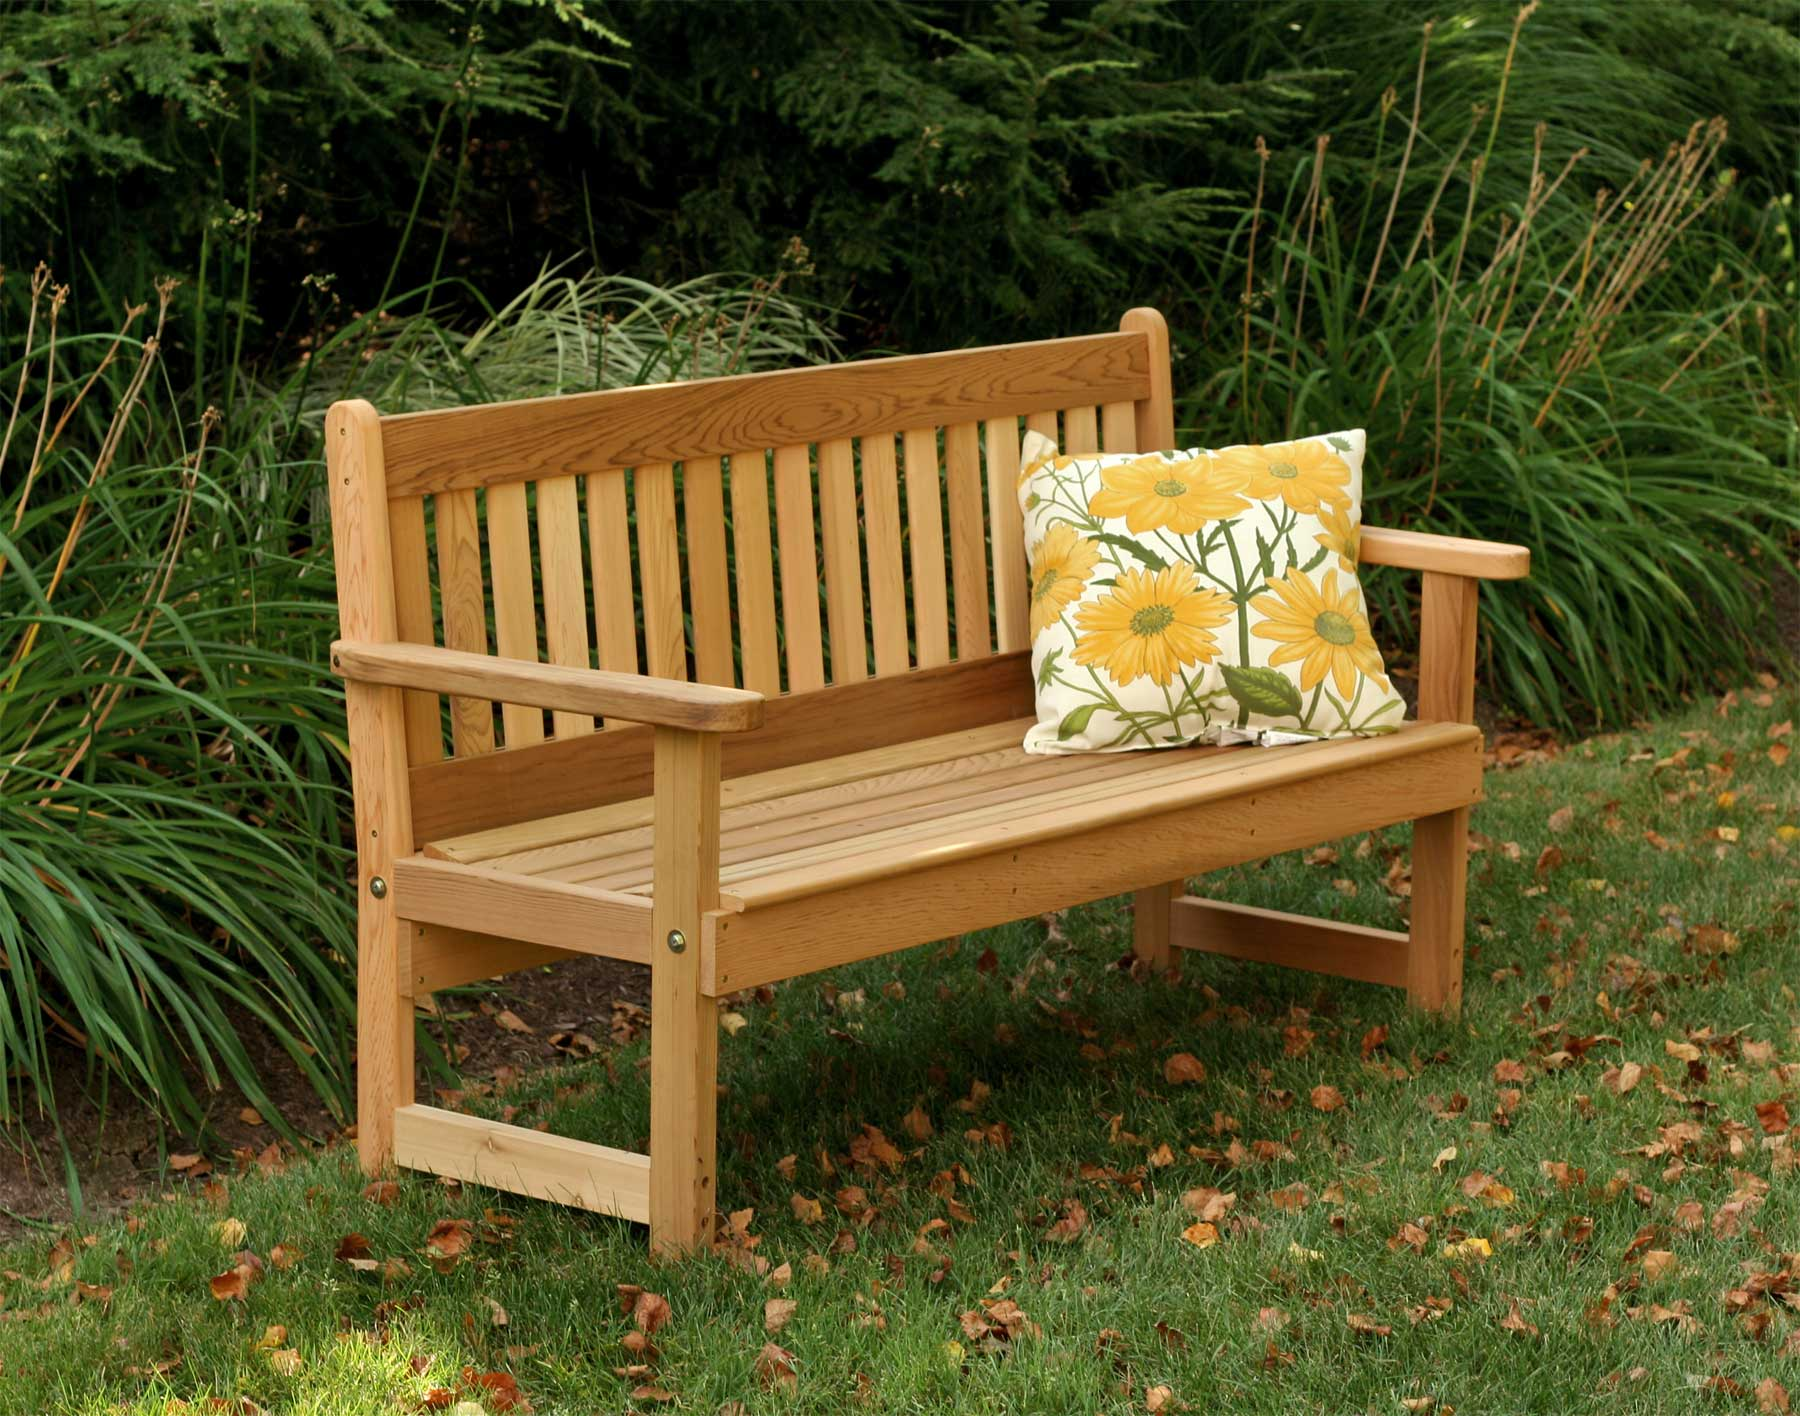 Red cedar english garden bench Yard bench